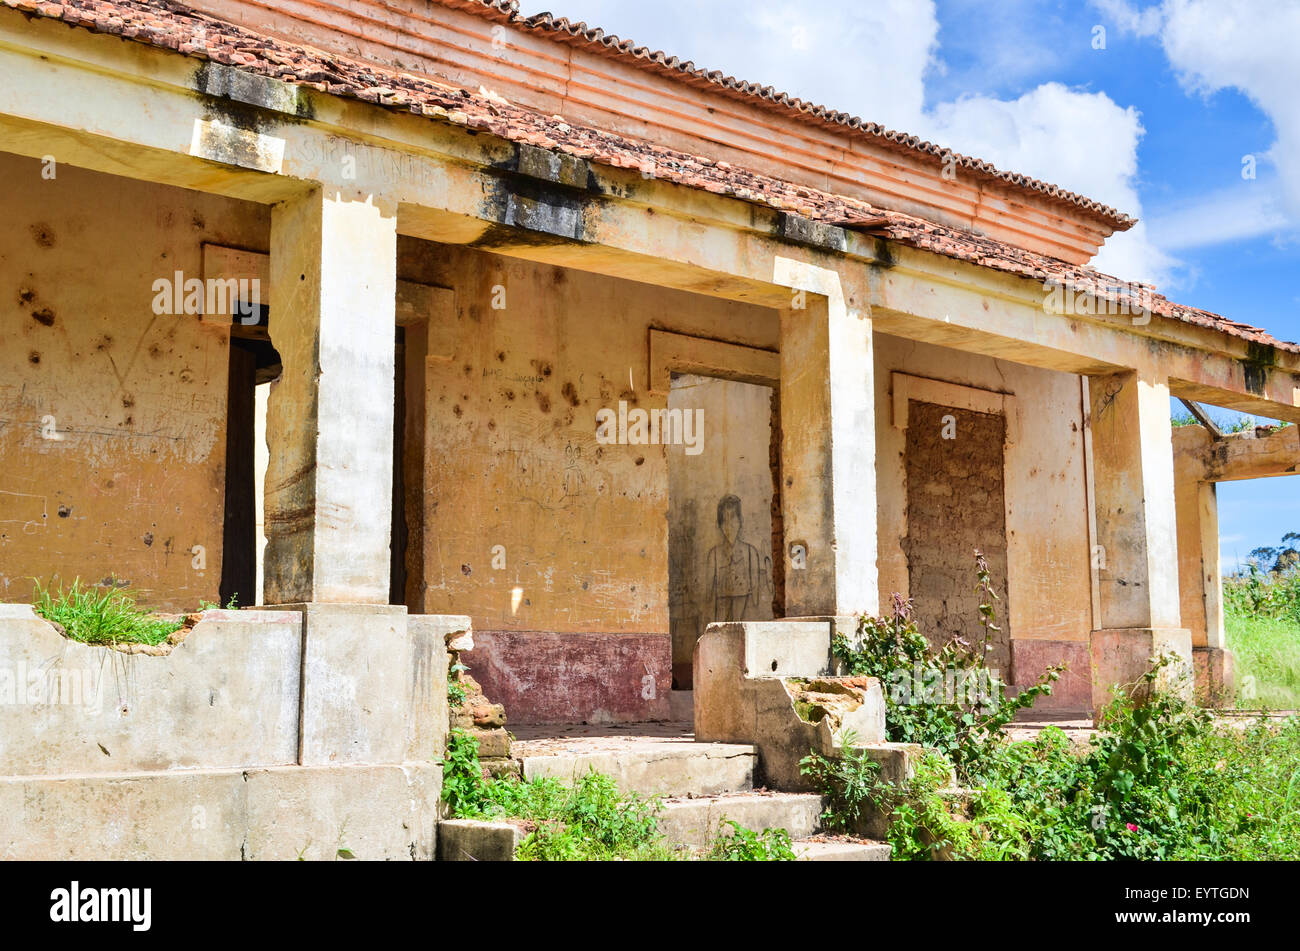 Ruins of a colonial building in rural Angola, with bullet marks in the wall - Stock Image